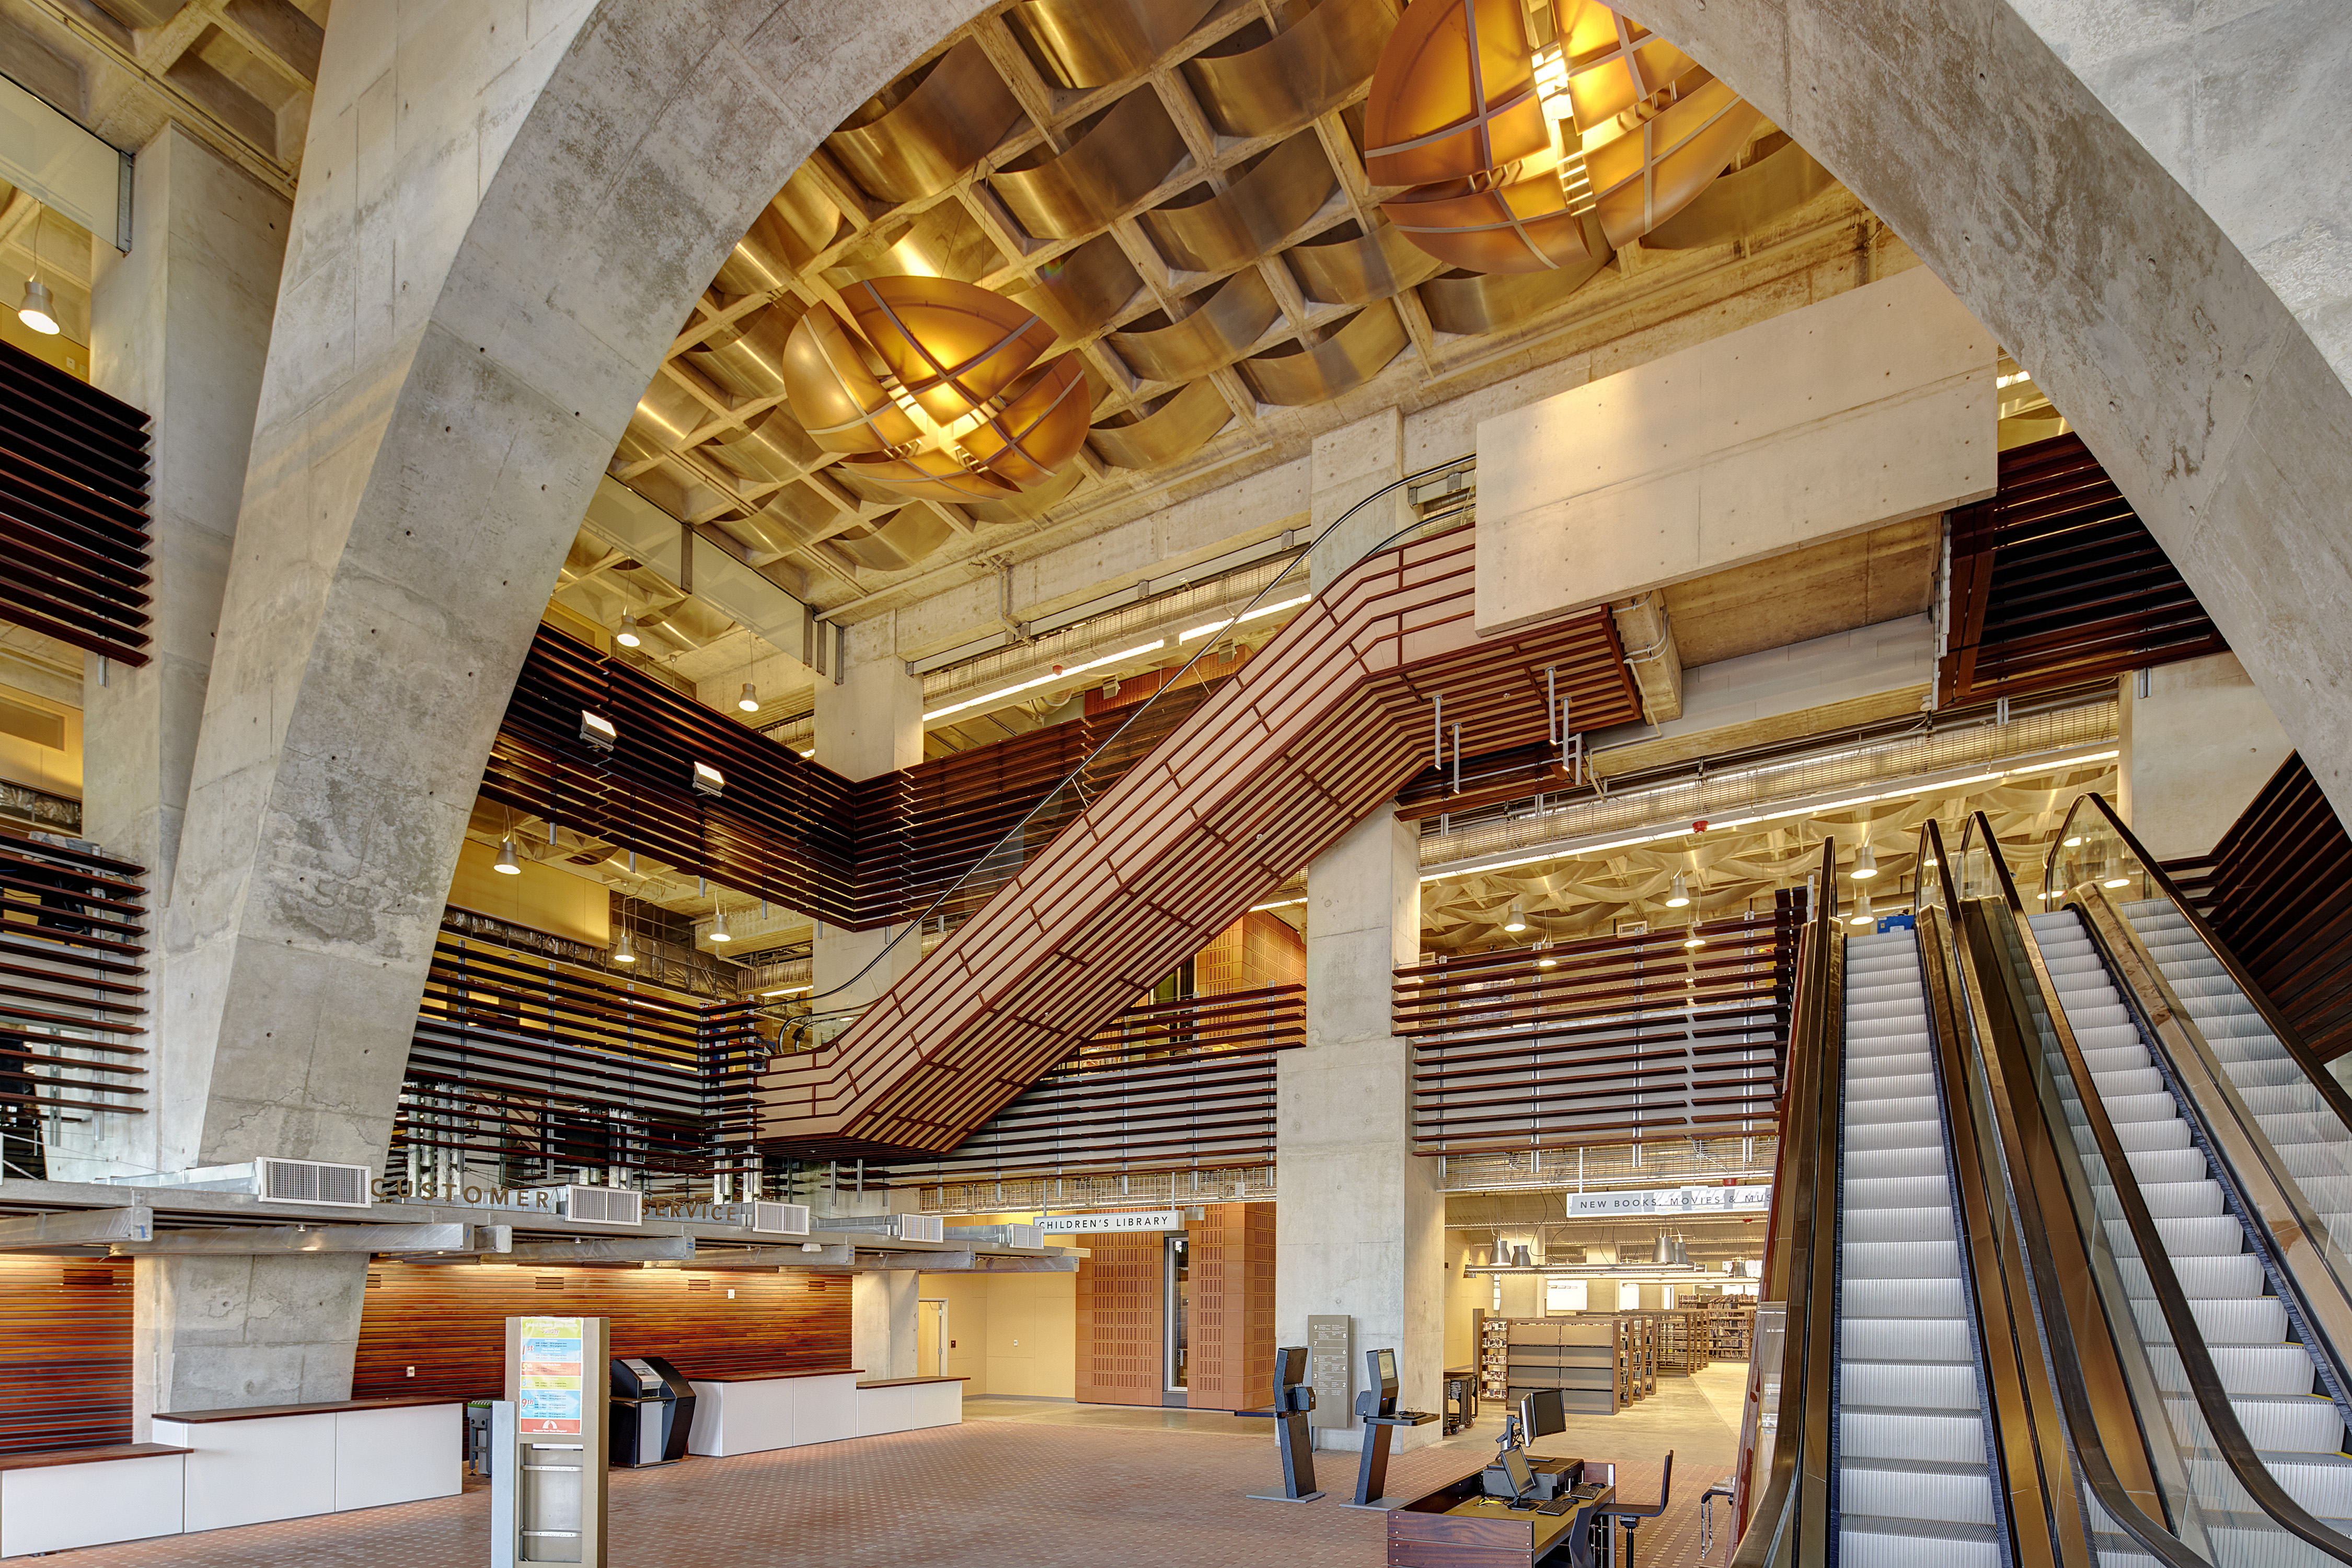 The San Diego Public Library: A Photographer's Guide ...